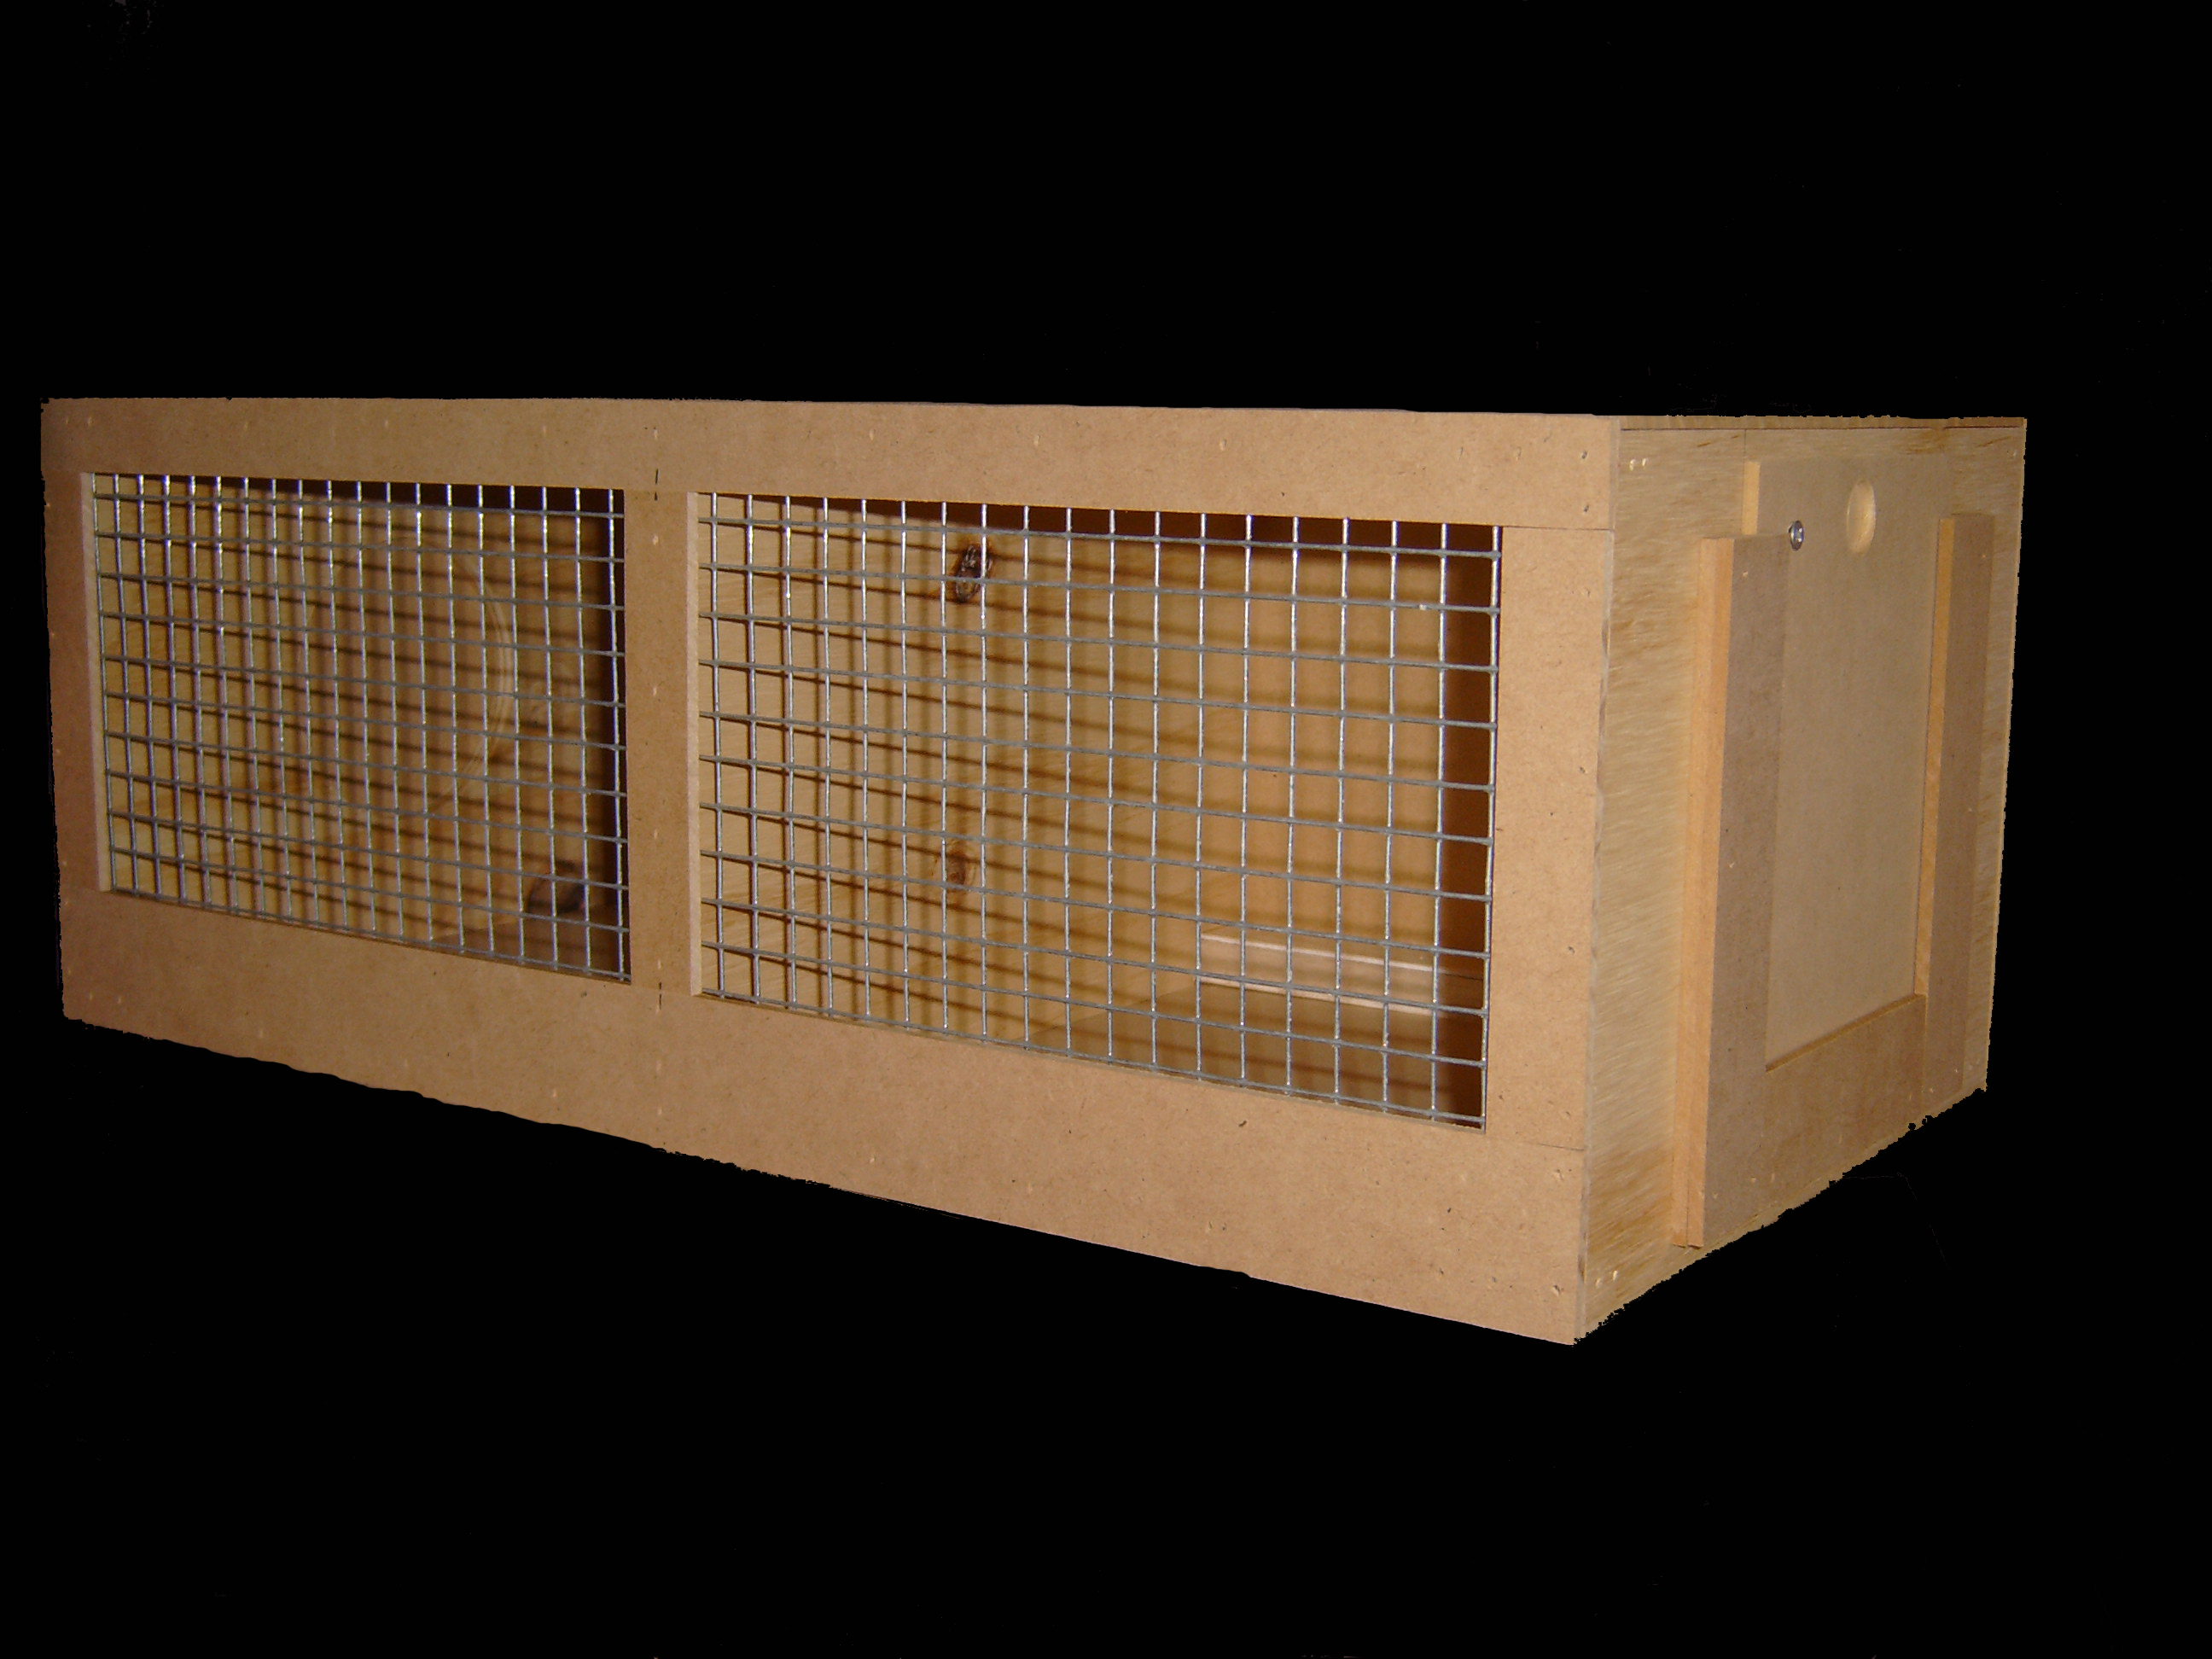 PLY DOUBLE AIR FREIGHT